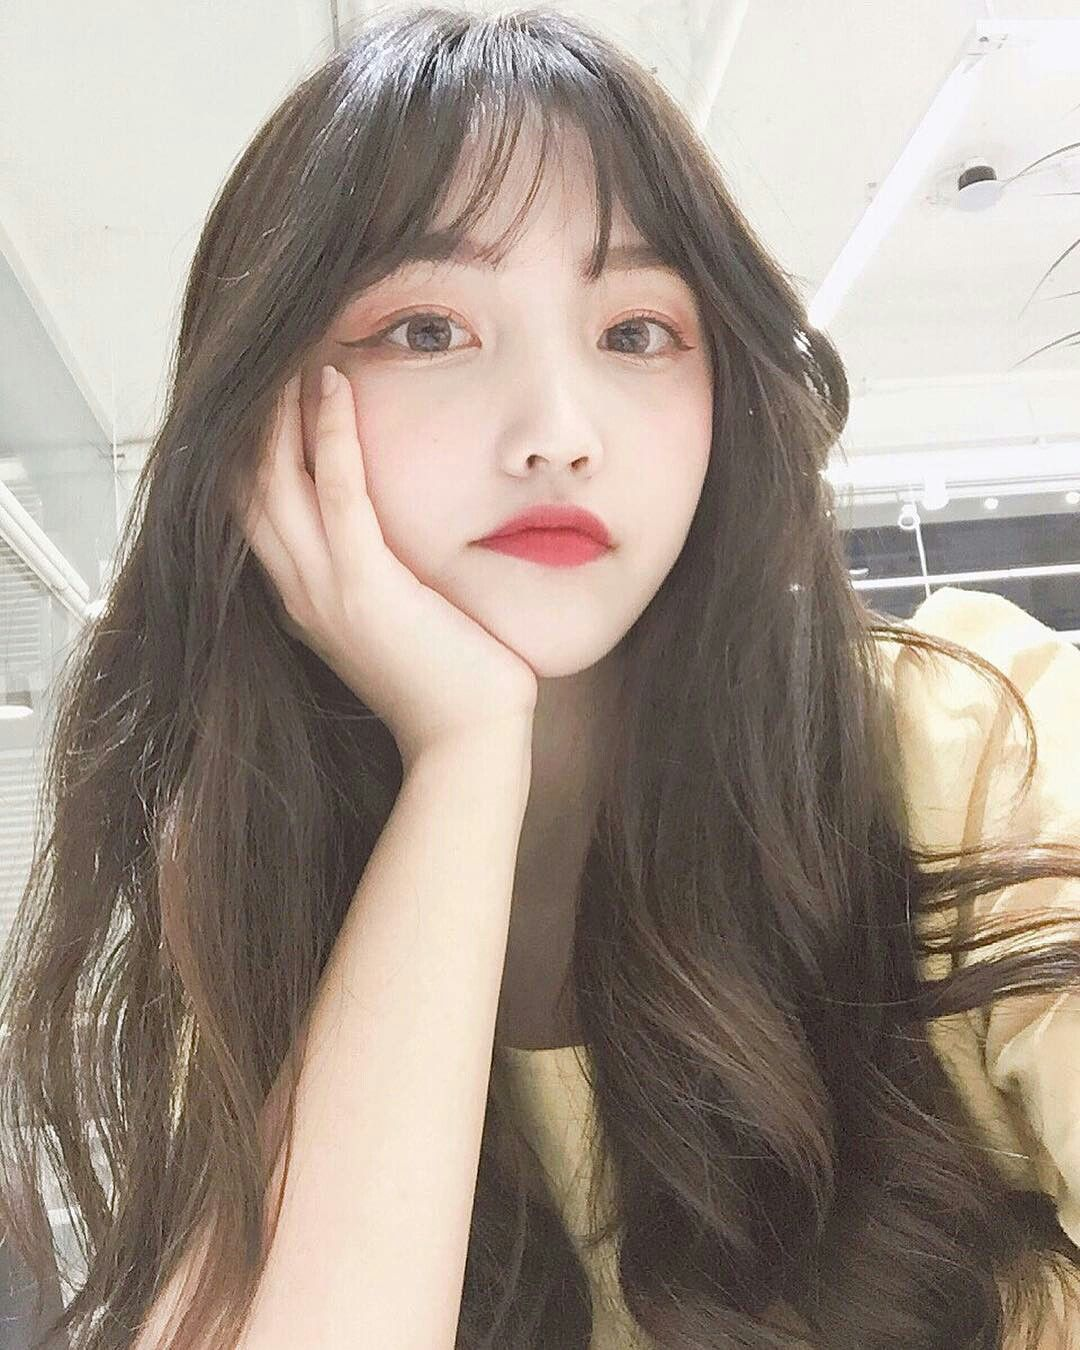 Pinterest : @chanaemi Follow For More Ulzzang Pics